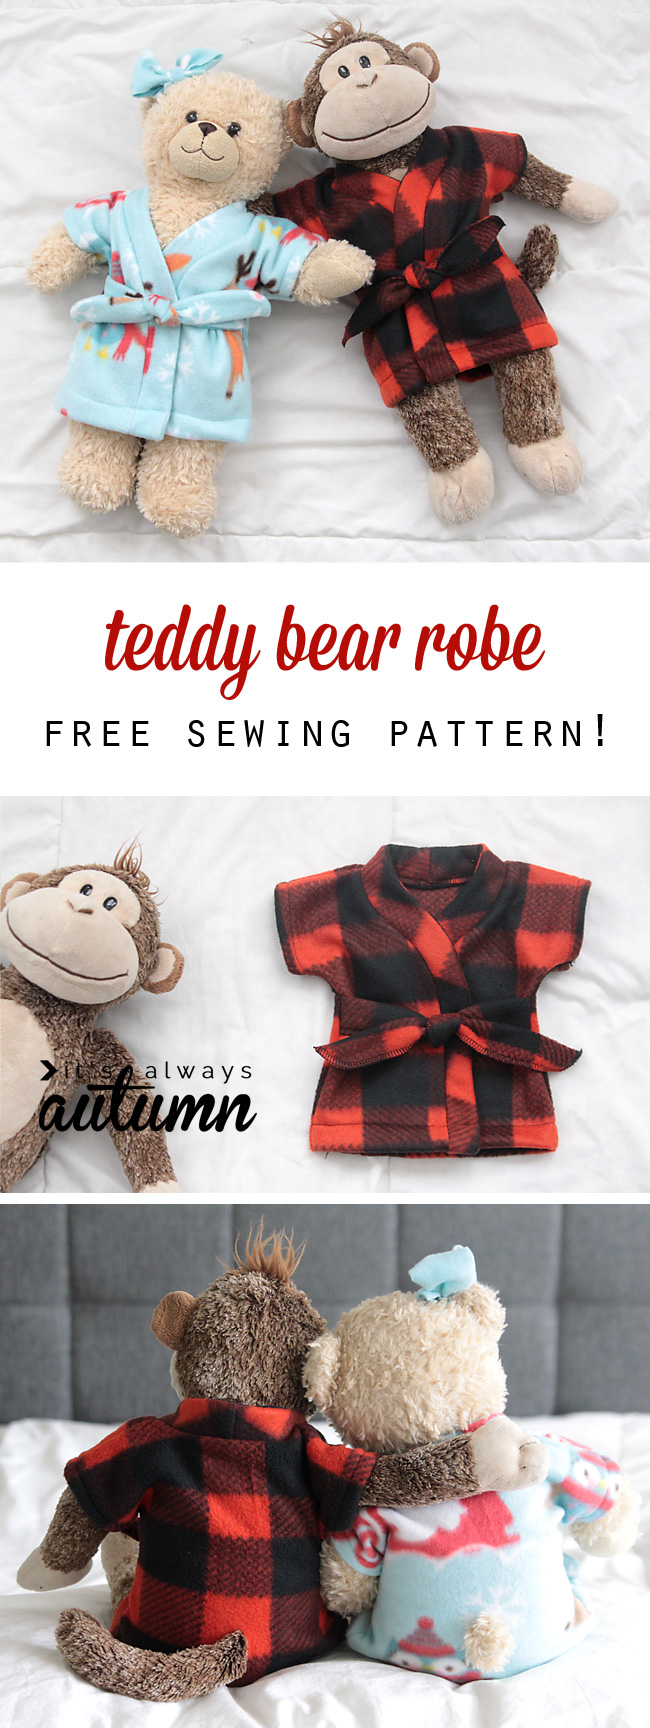 Stuffed animal teddy bear robe free sewing pattern its this is adorable im going to make some for christmas free stuffed jeuxipadfo Choice Image